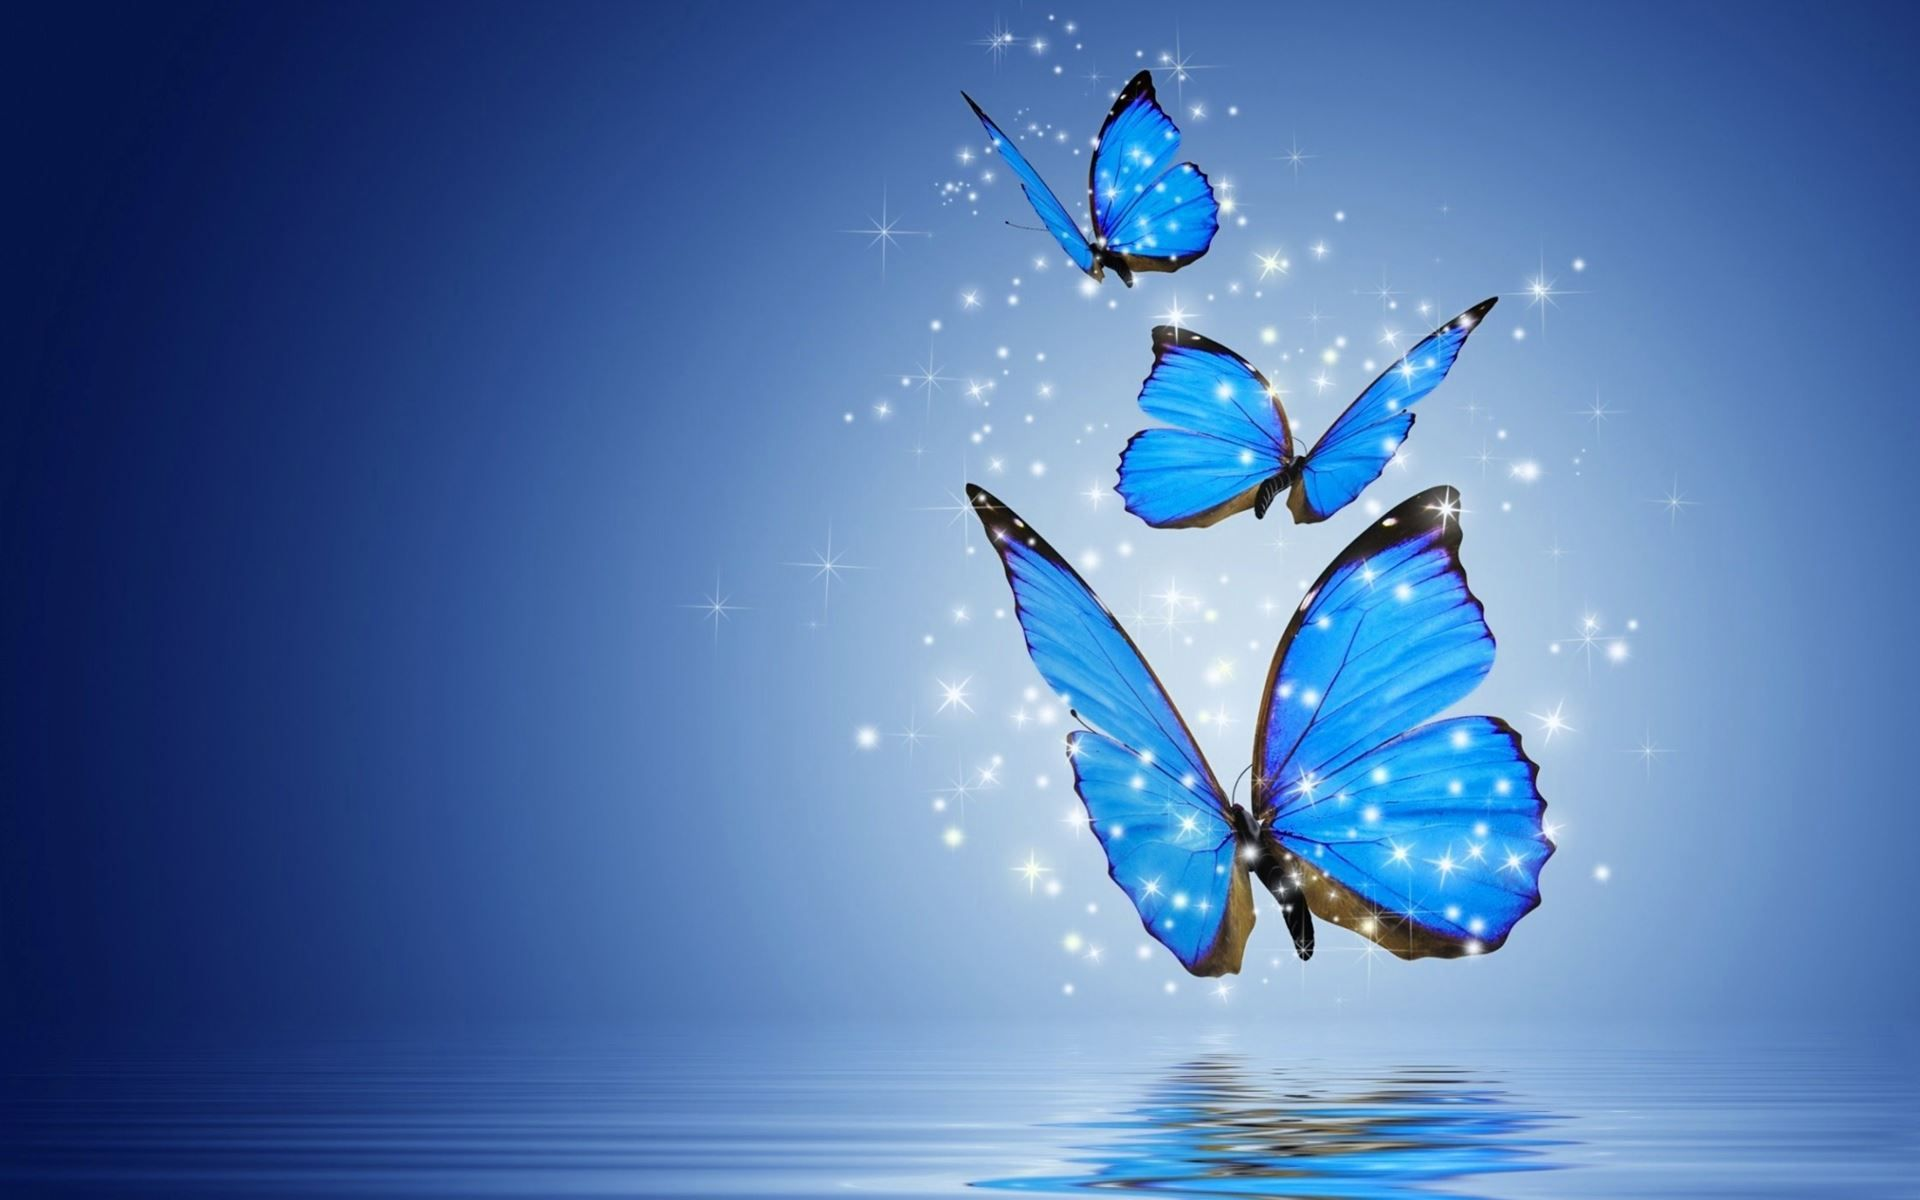 hd wallpapers for desktop butterflies Bing images